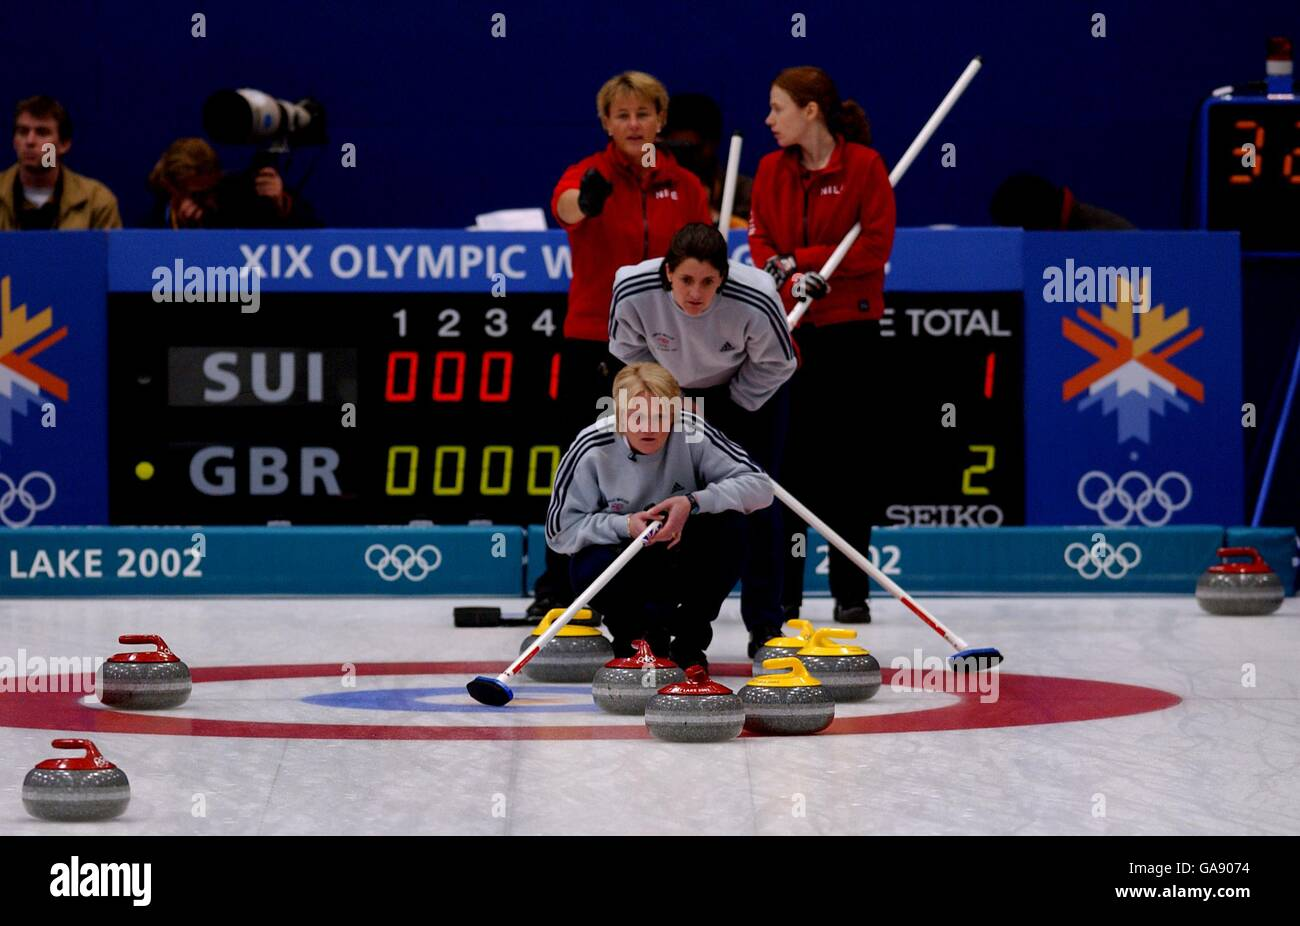 Curling at the 2002 Winter Olympics